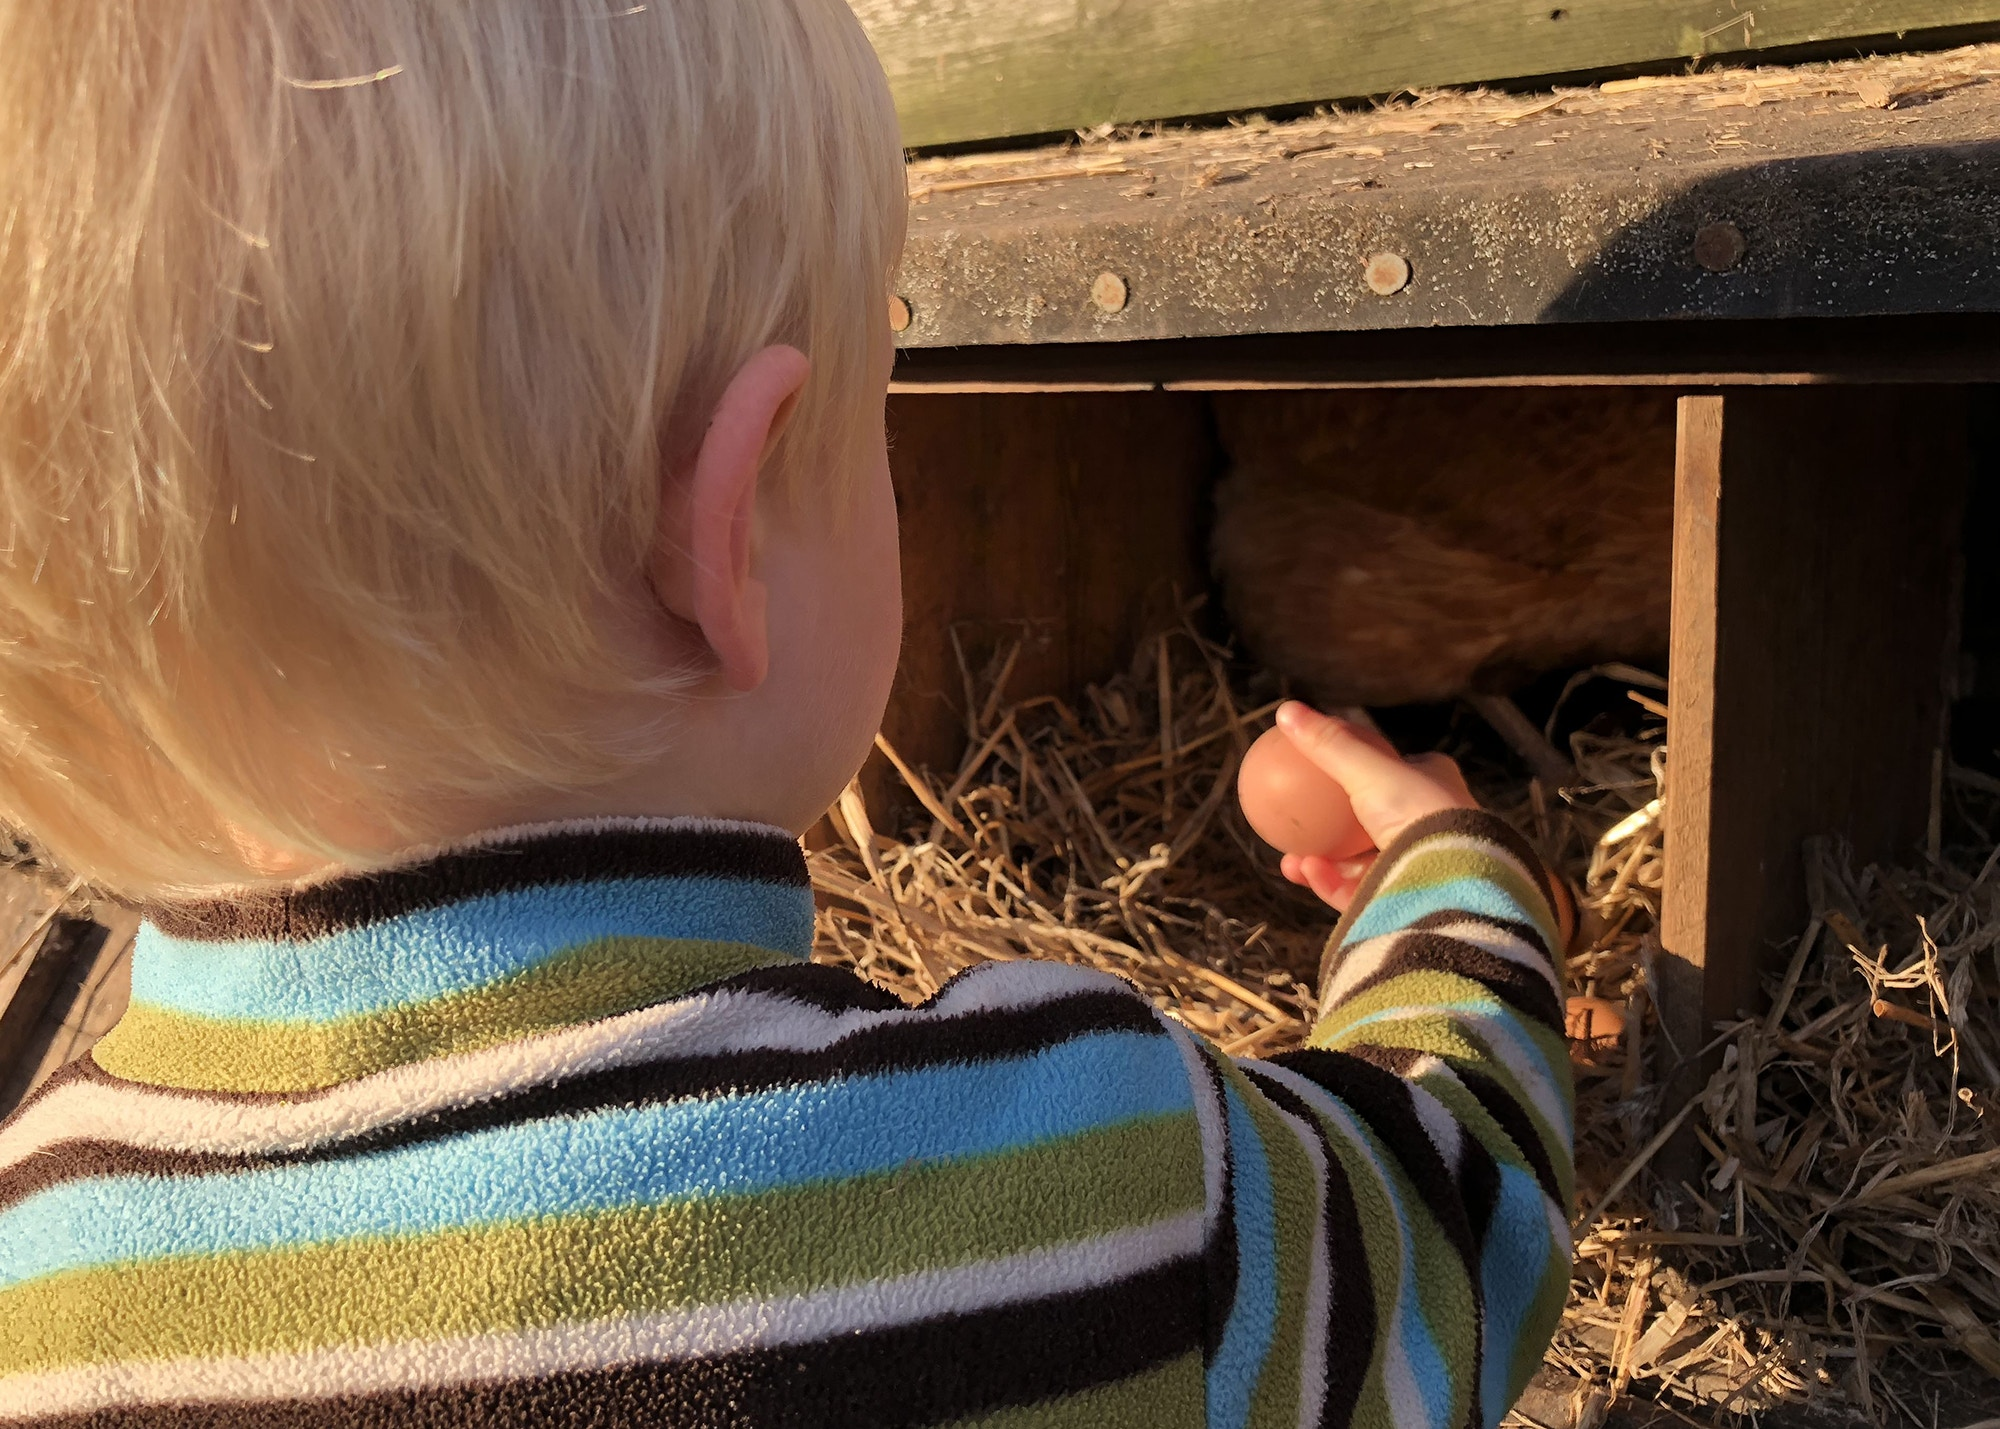 Boy taking an egg out of a chicken coop.